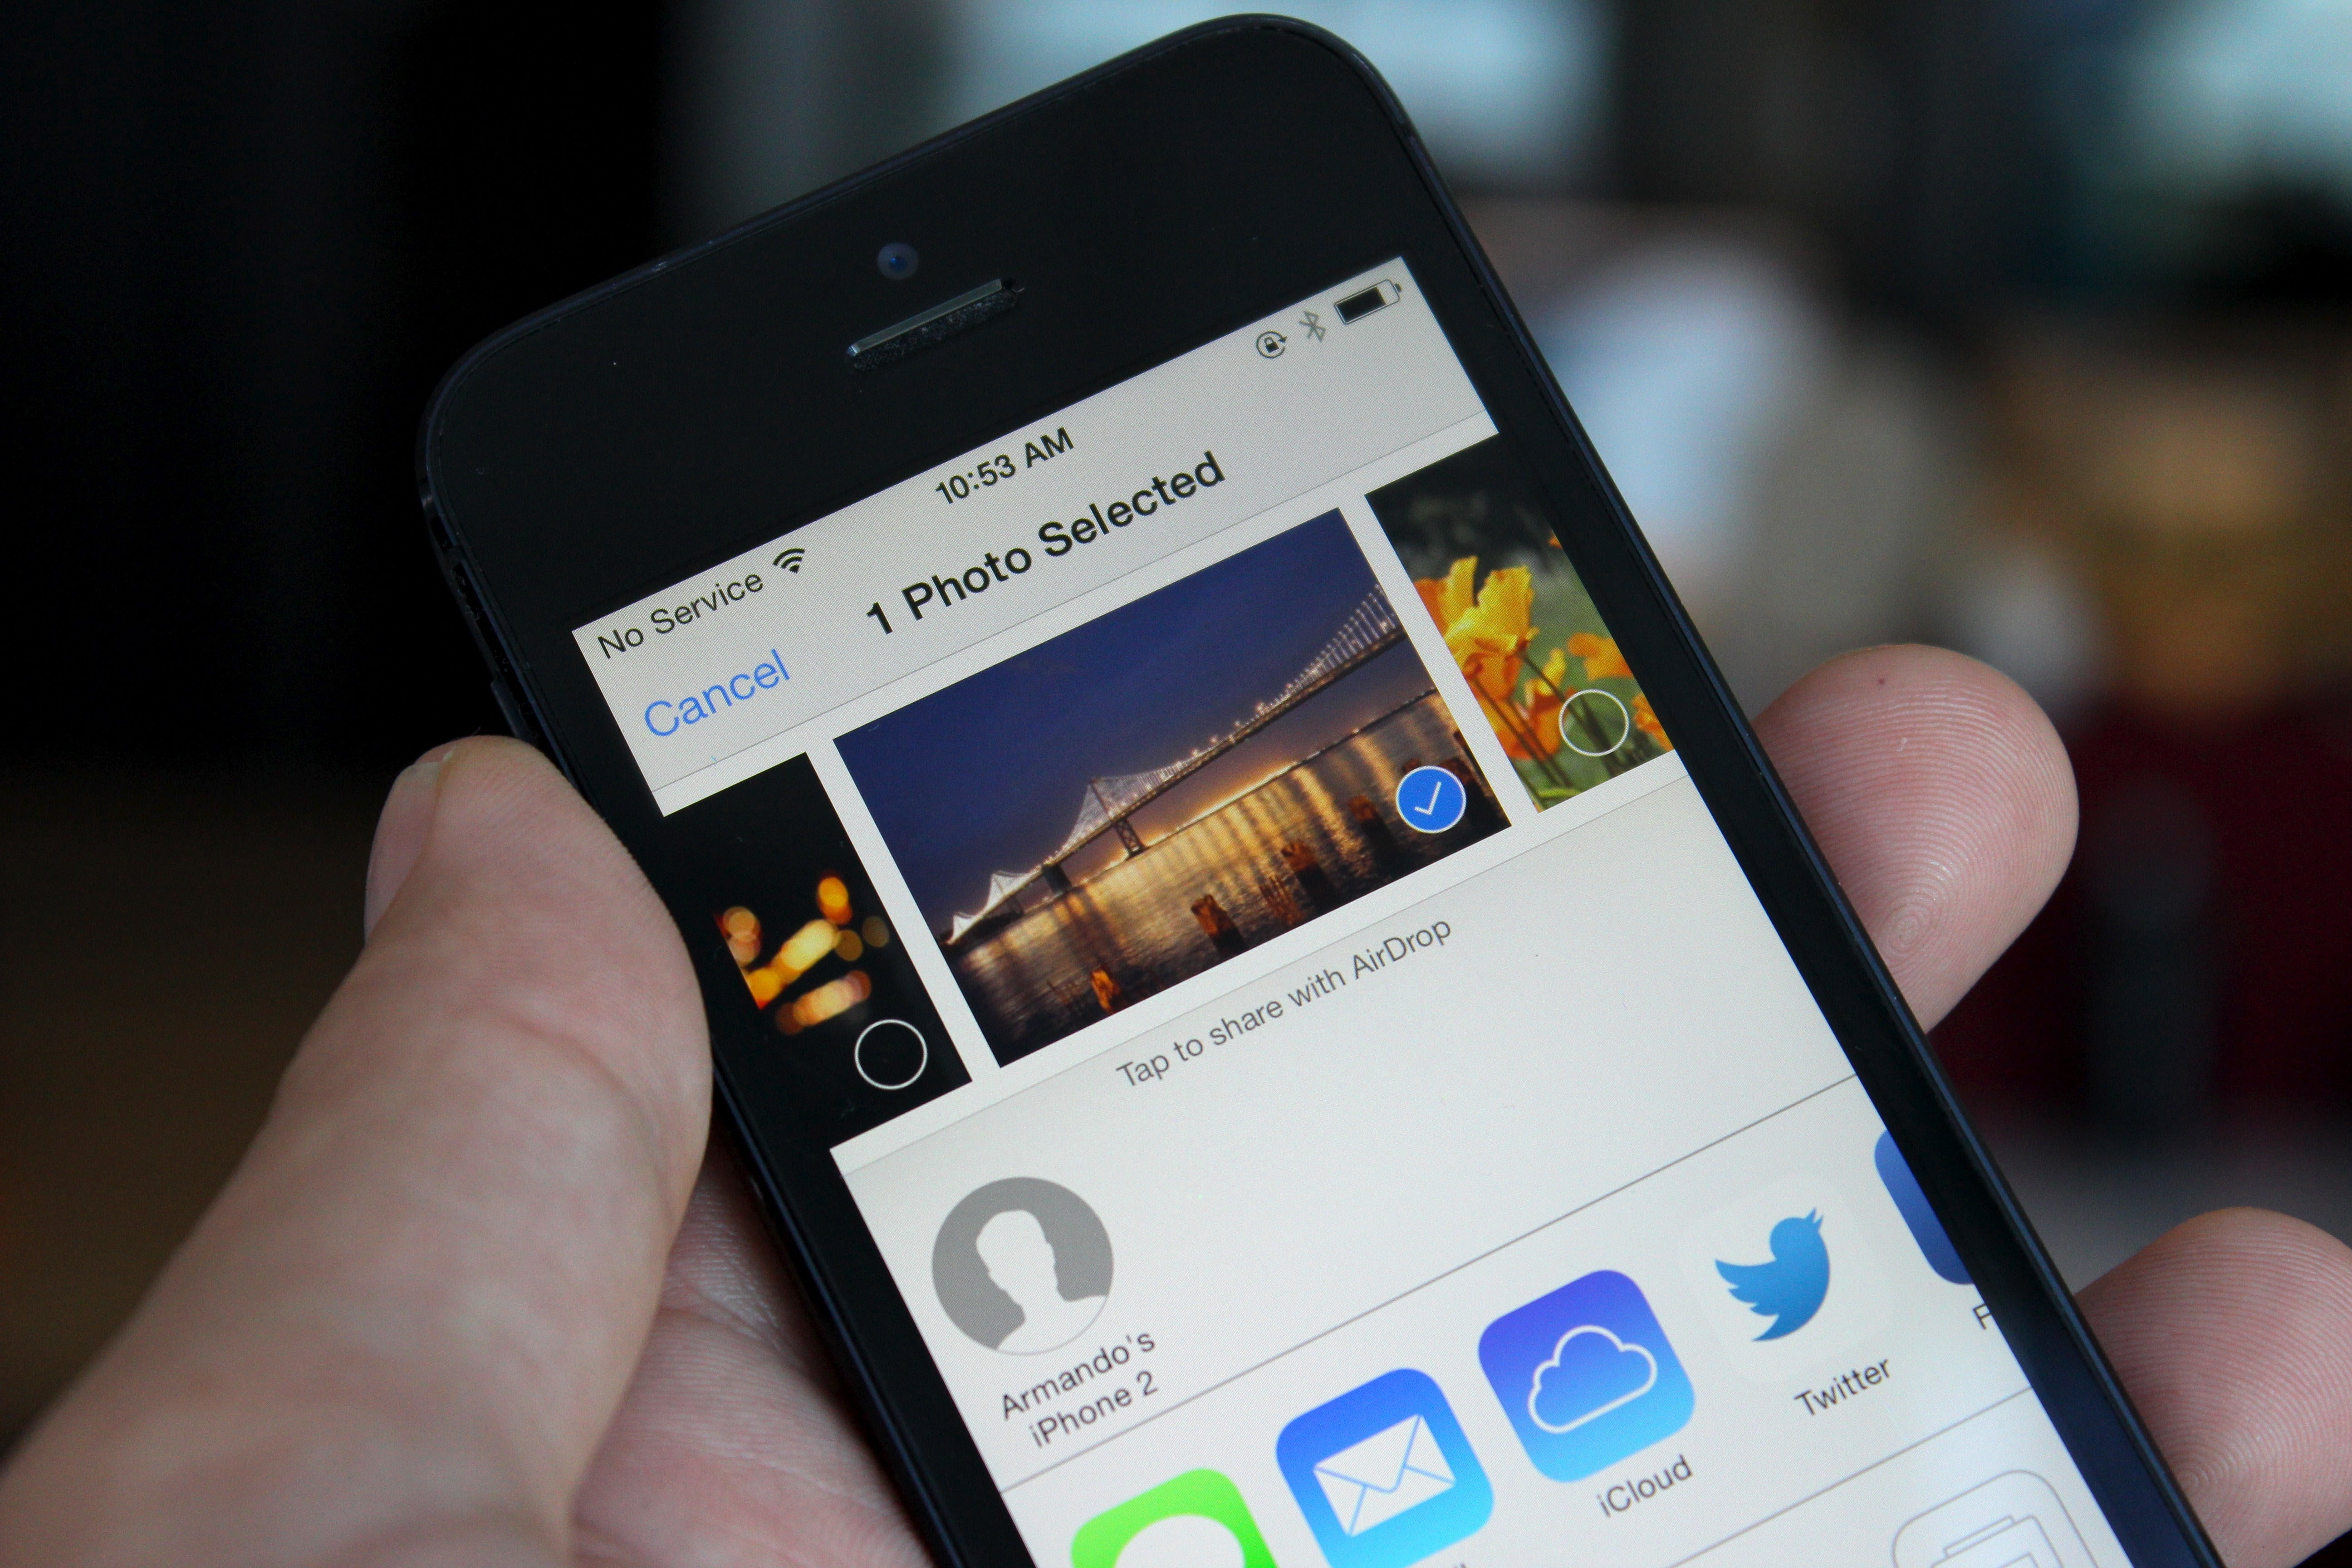 how to find videos on iphone picture